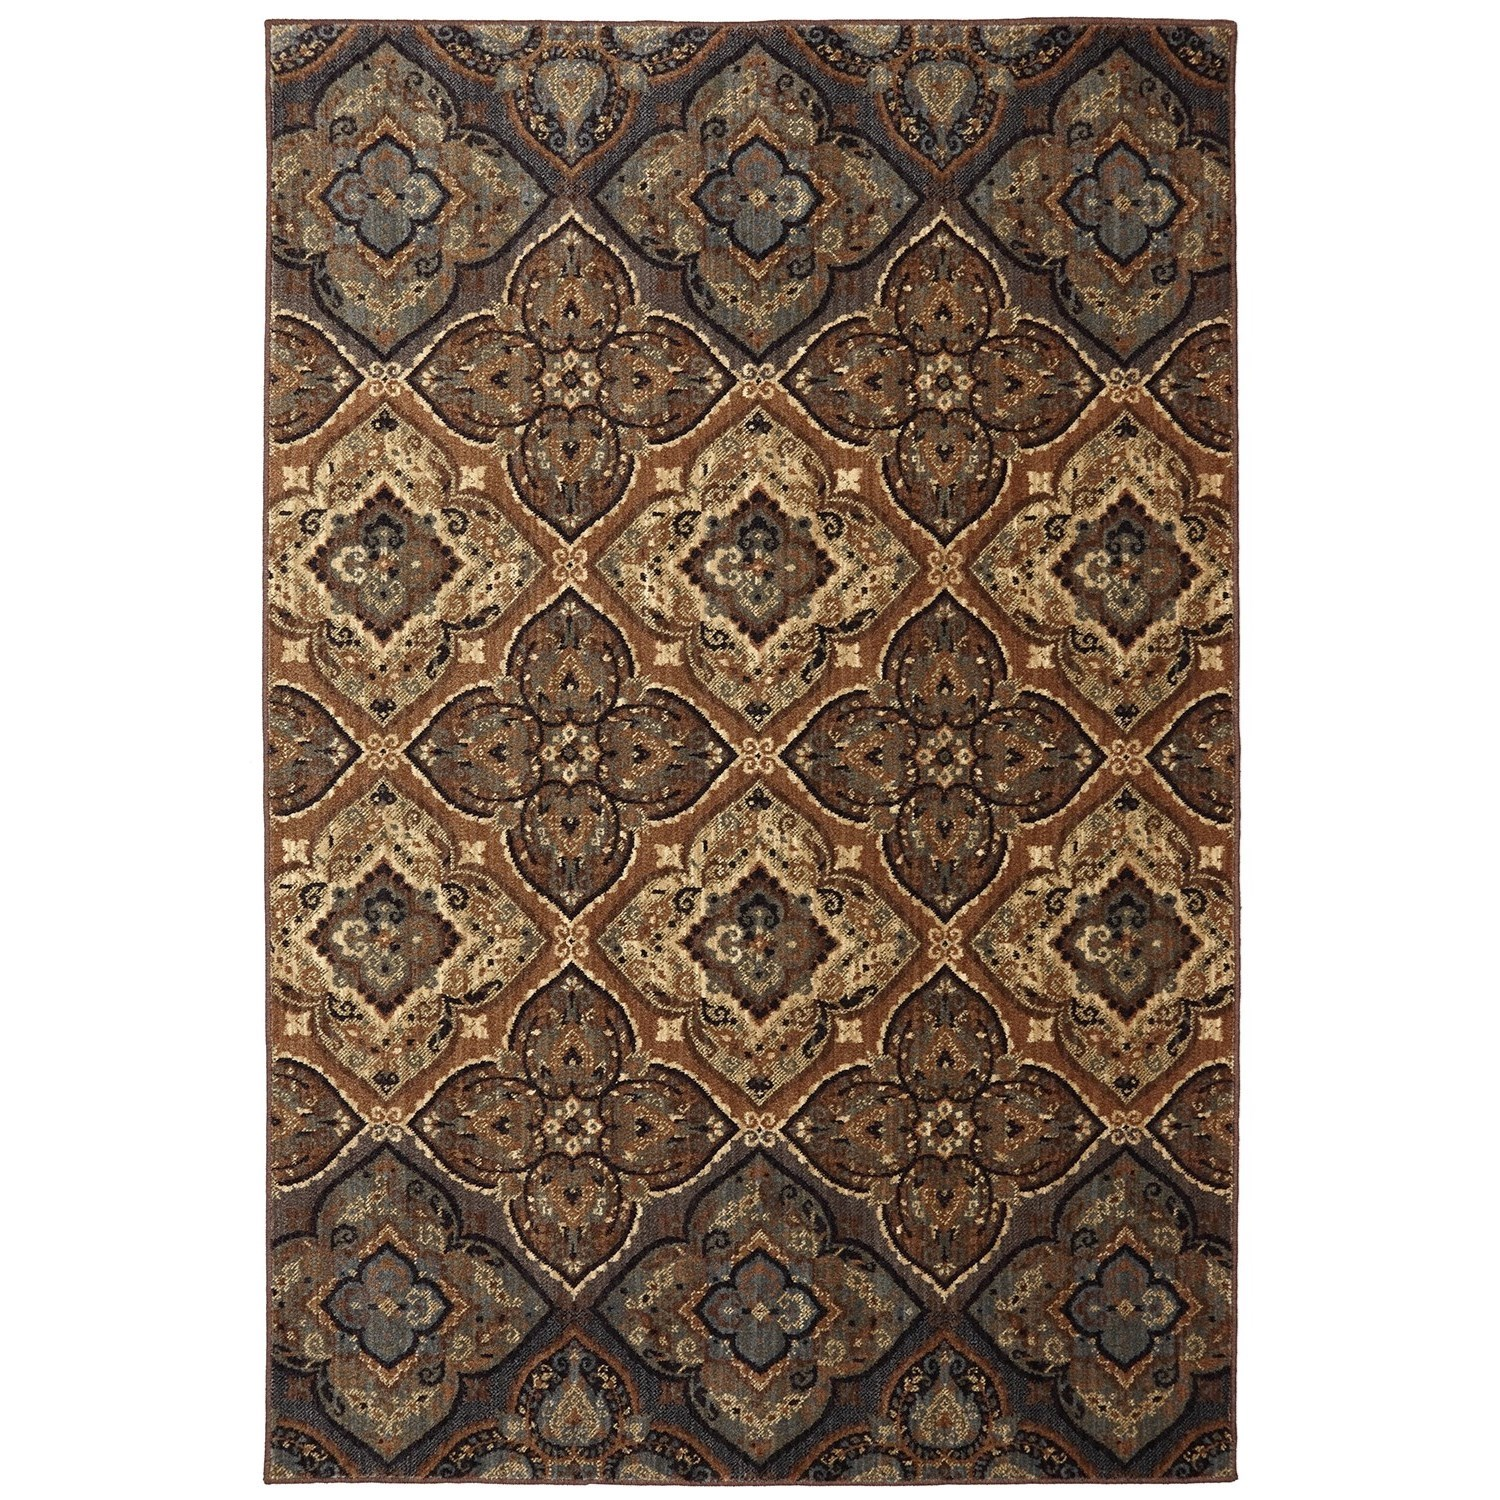 """Dryden 9' 6""""x12' 11"""" Chapel Tundra Area Rug by American Rug Craftsmen at Alison Craig Home Furnishings"""